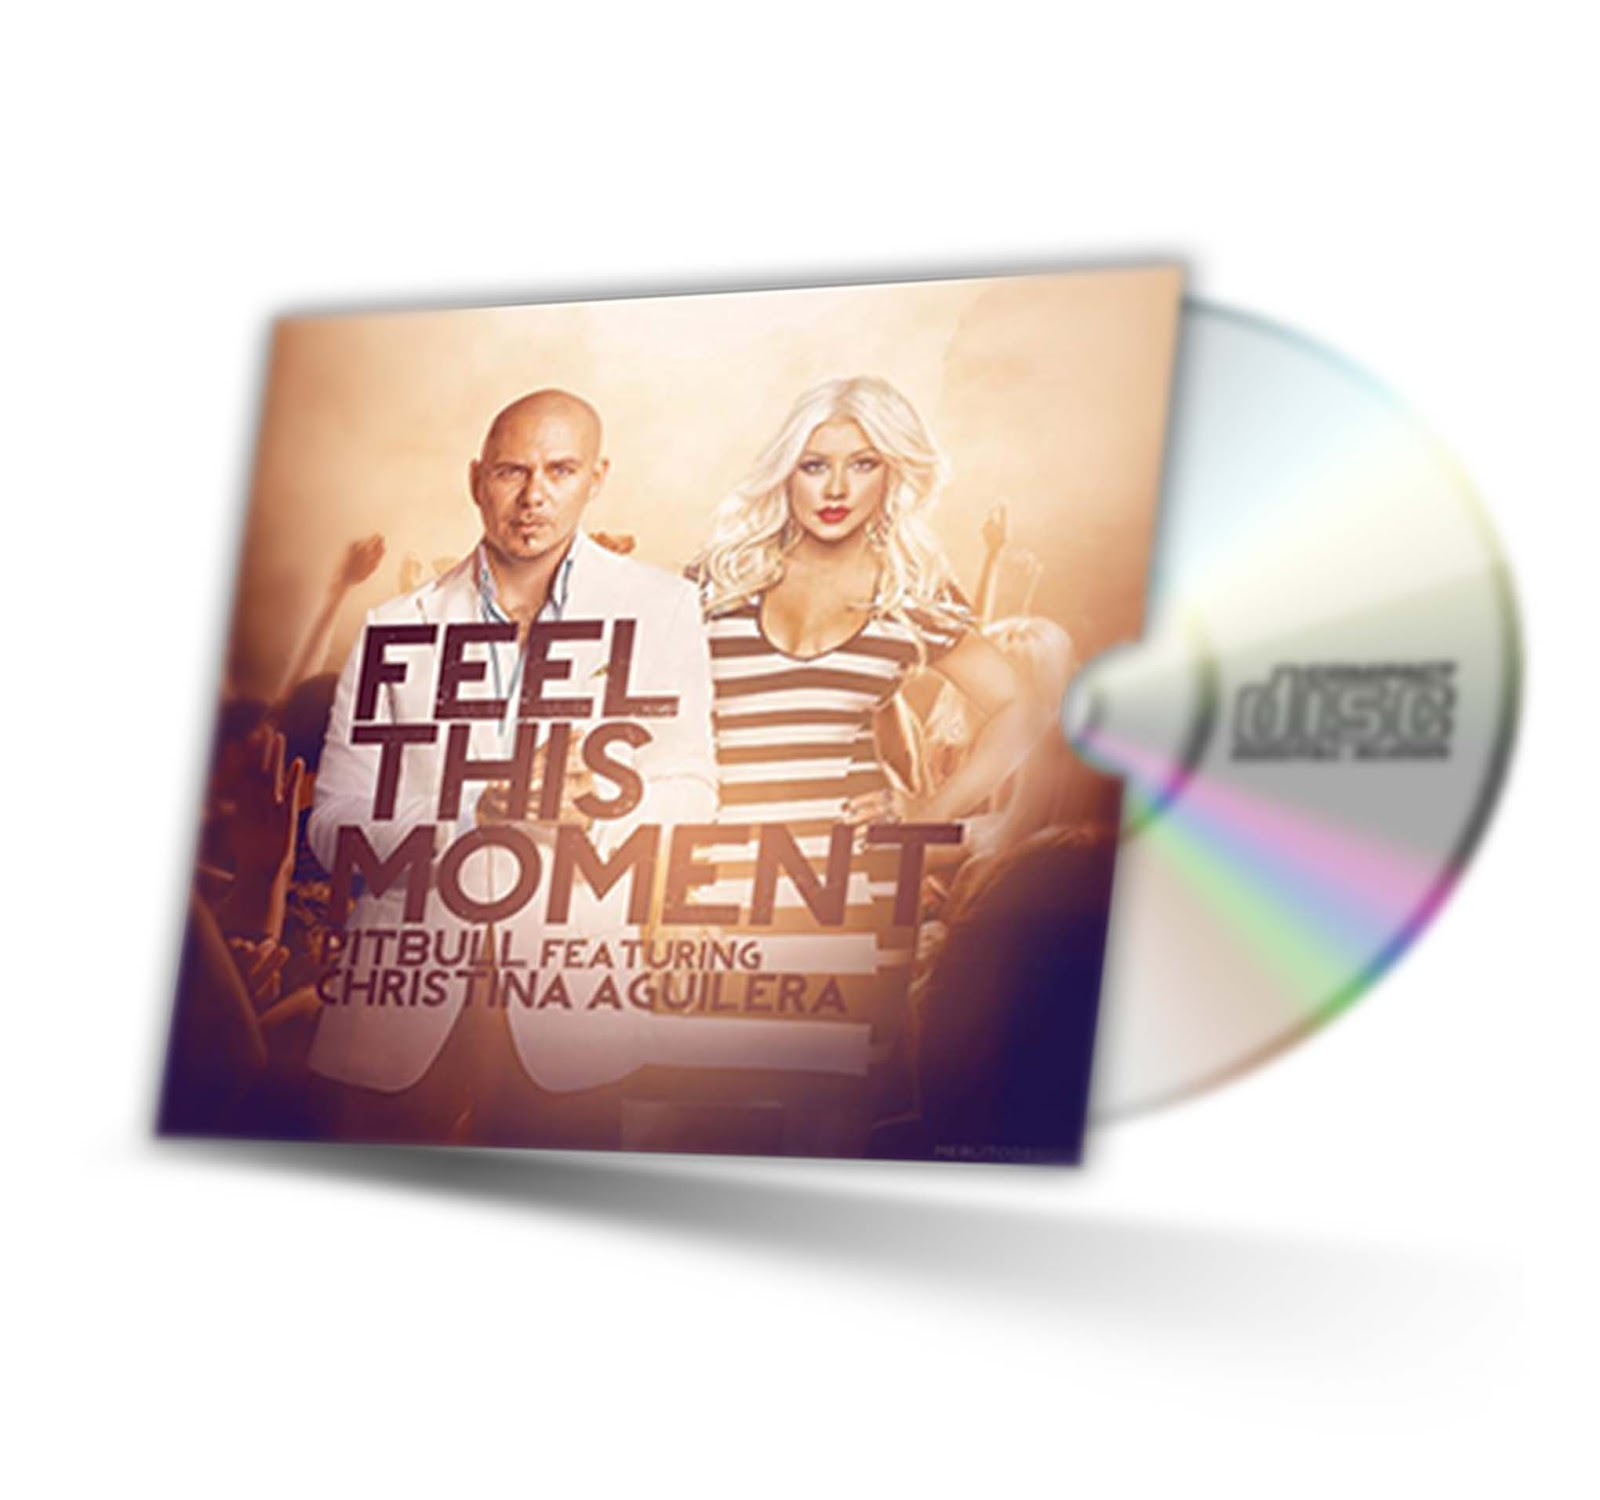 Feel This Moment - Pitbull Ft Christina Aguilera Mp3